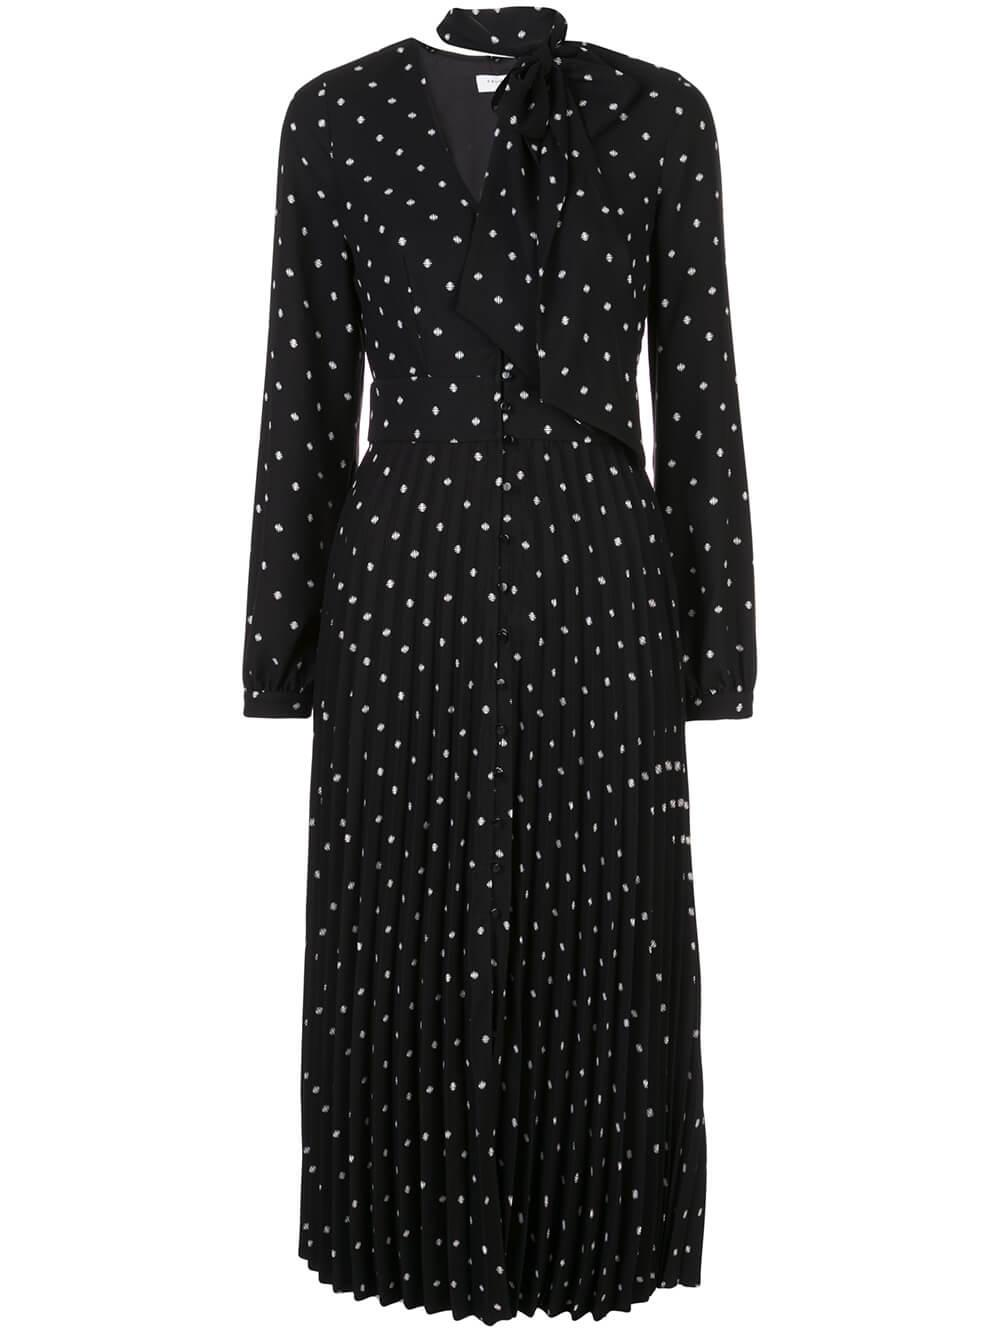 Amirin Polka Dot Dress